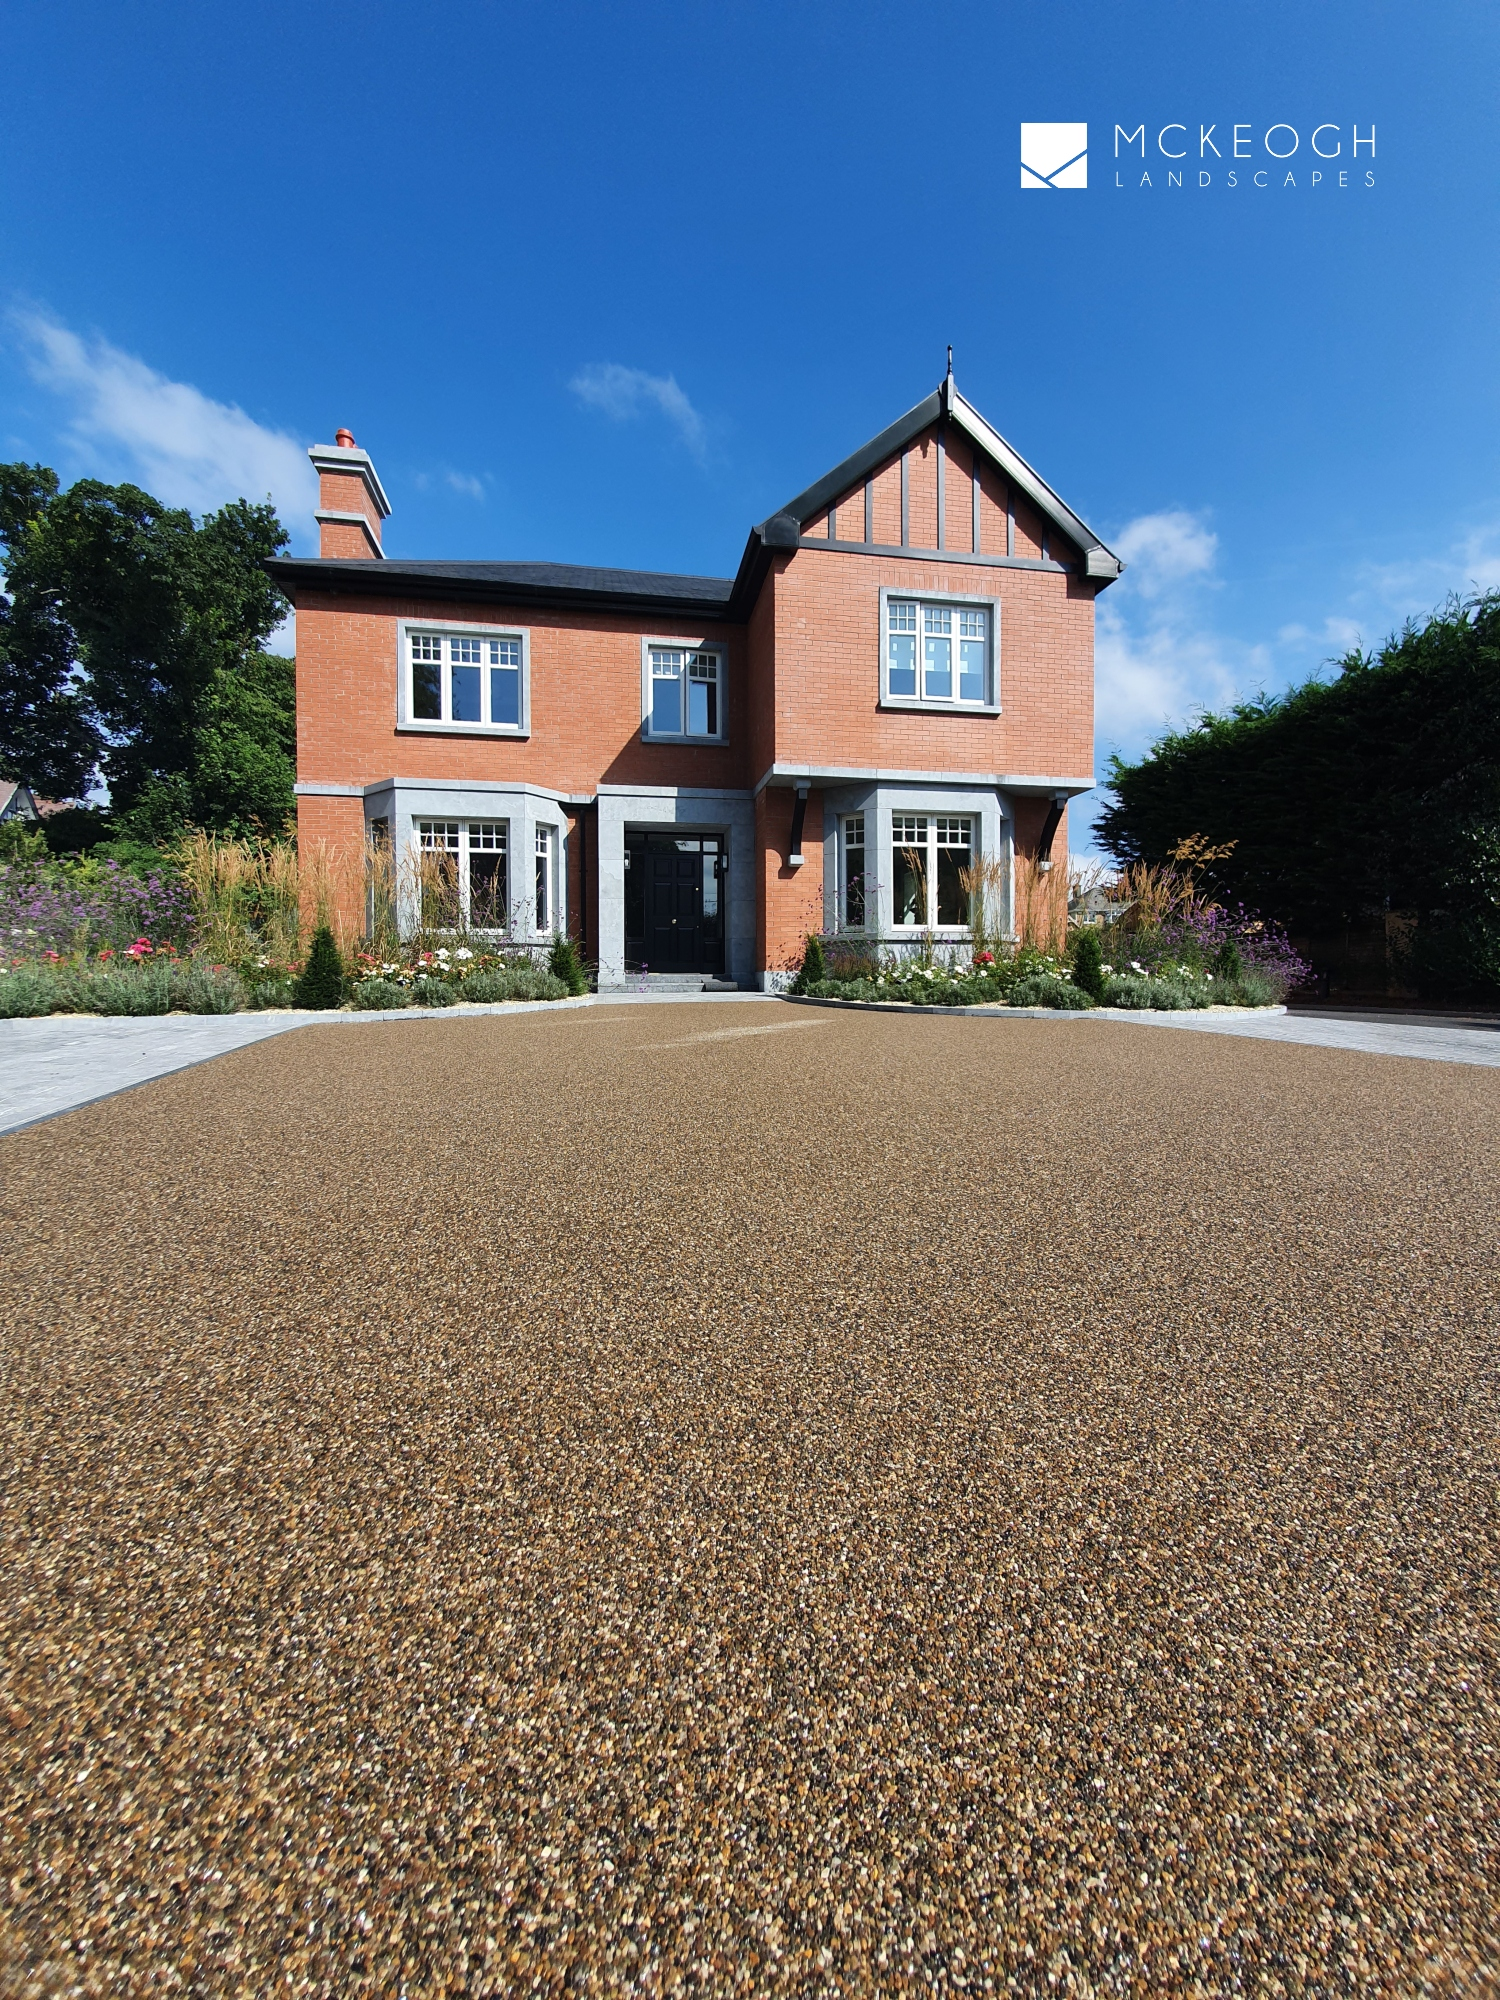 Limerick city period home with resin bound surface driveway